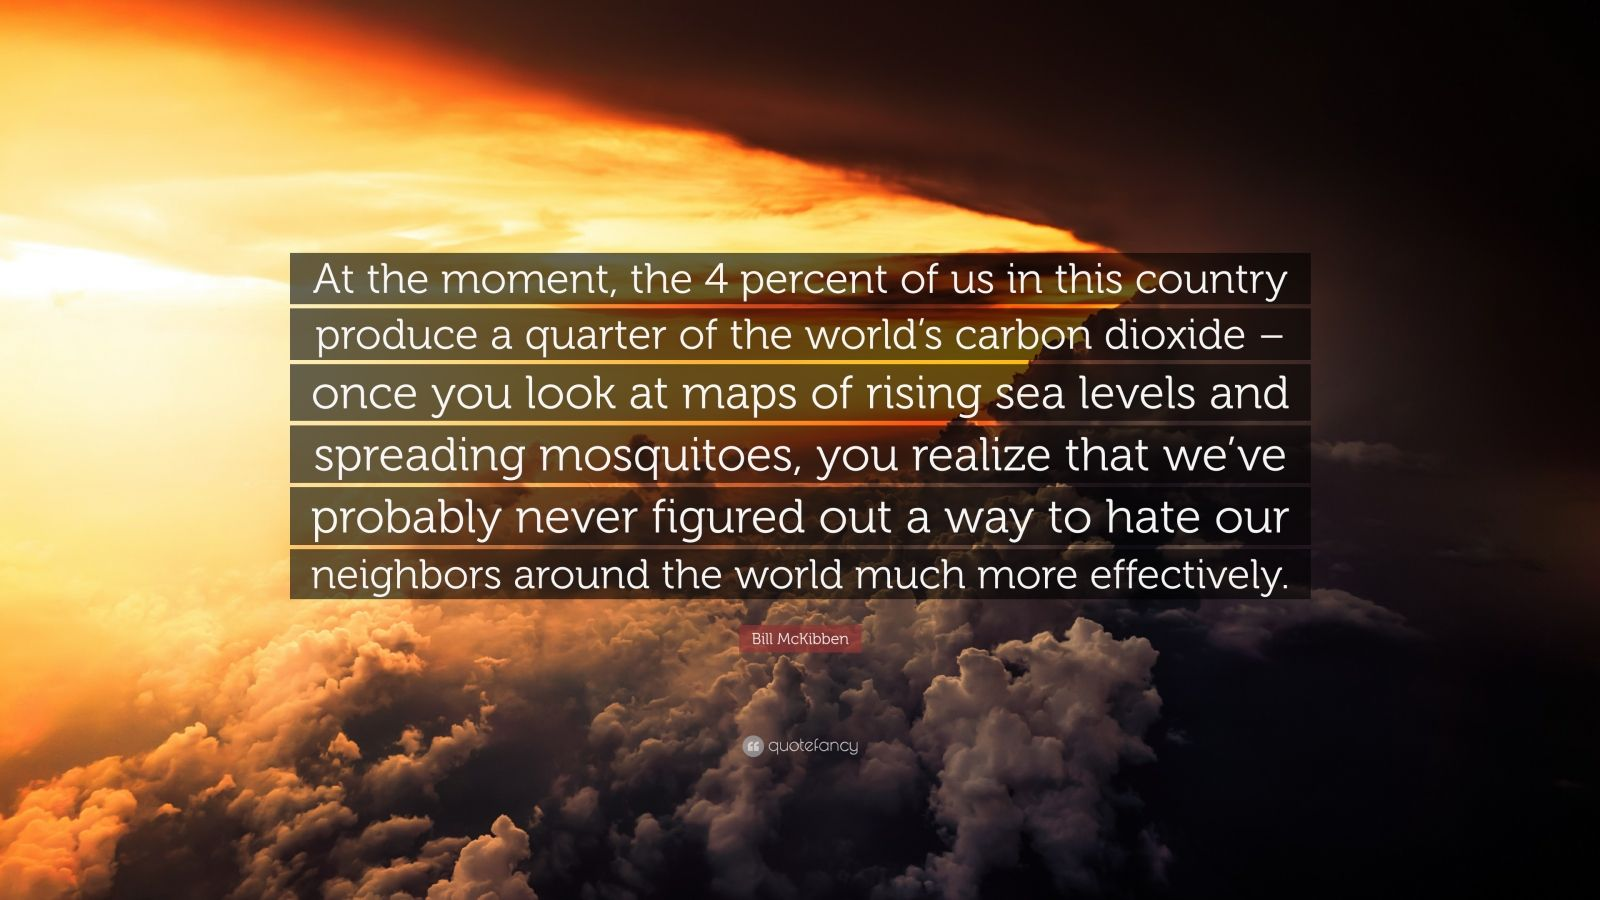 """Bill McKibben Quote: """"At the moment, the 4 percent of us in this country produce a quarter of the world's carbon dioxide – once you look at maps of rising sea levels and spreading mosquitoes, you realize that we've probably never figured out a way to hate our neighbors around the world much more effectively."""""""